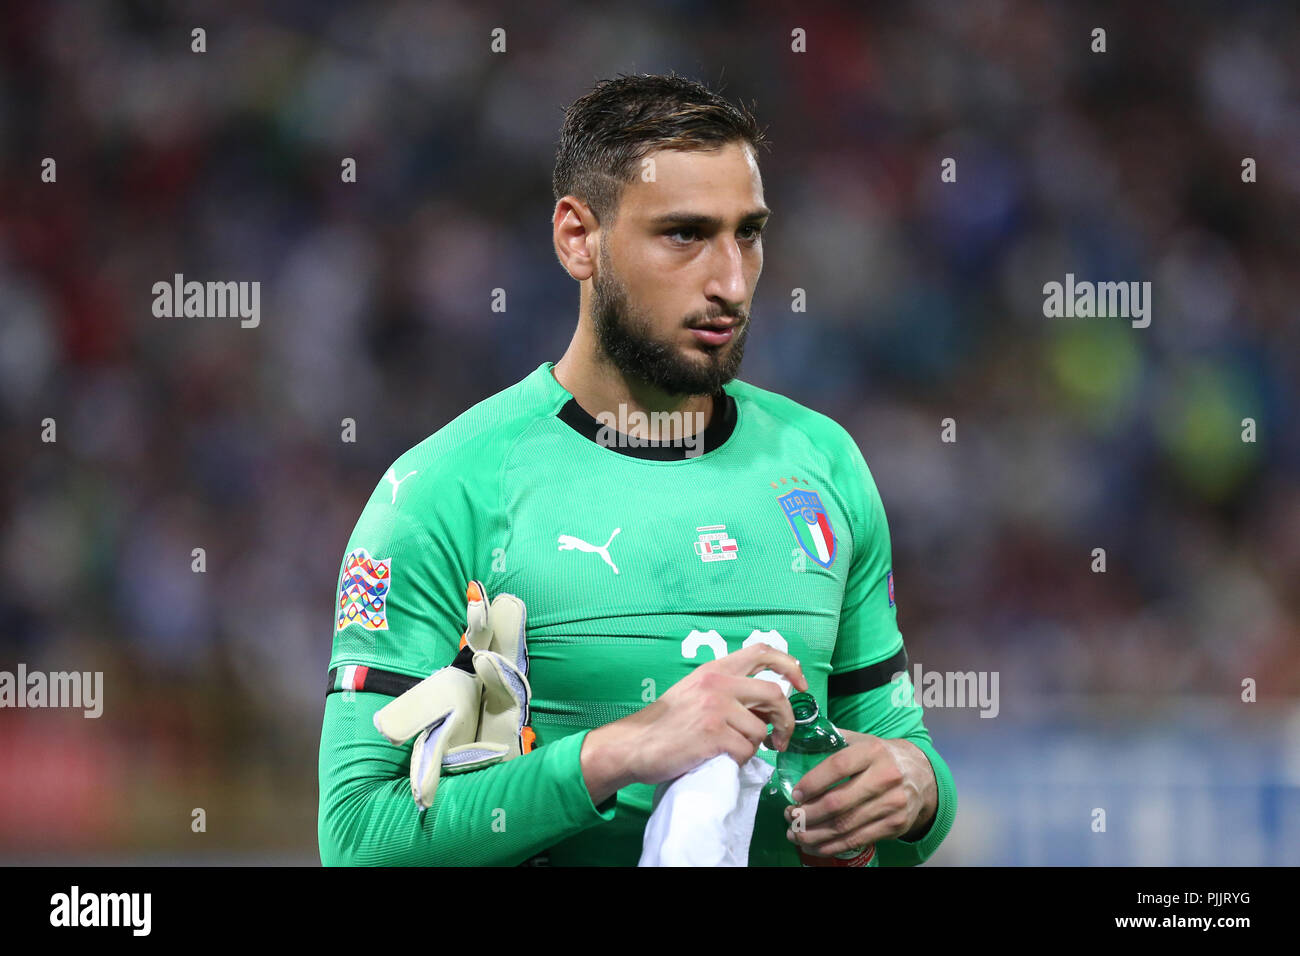 Page 3 Gianluigi Donnarumma Italy High Resolution Stock Photography And Images Alamy